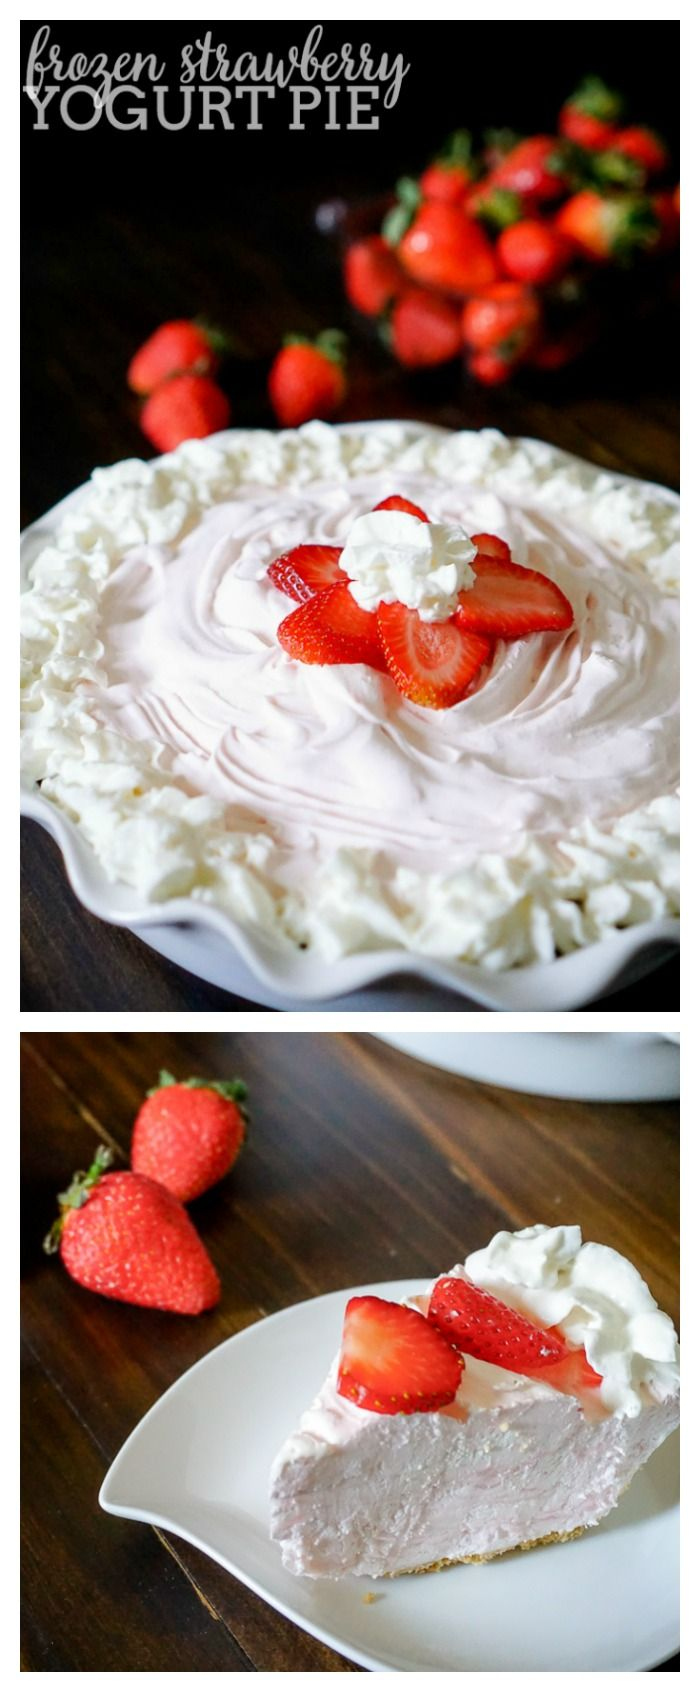 Frozen Strawberry Yogurt Pie - A quick prep pie recipe that is perfect for spring and summer!